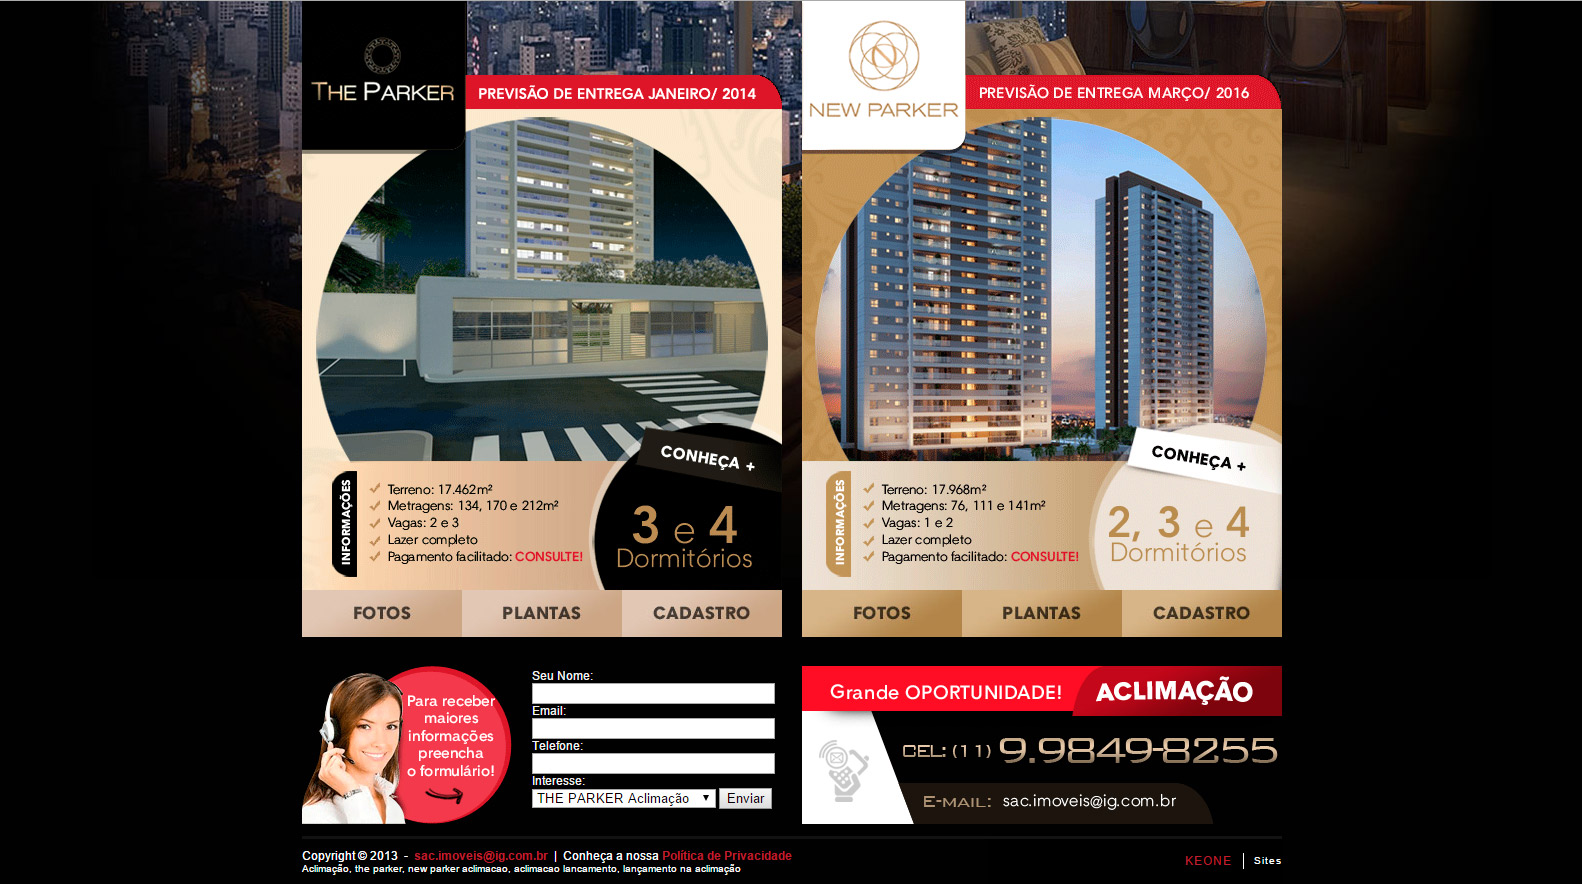 newparker-aclimacao